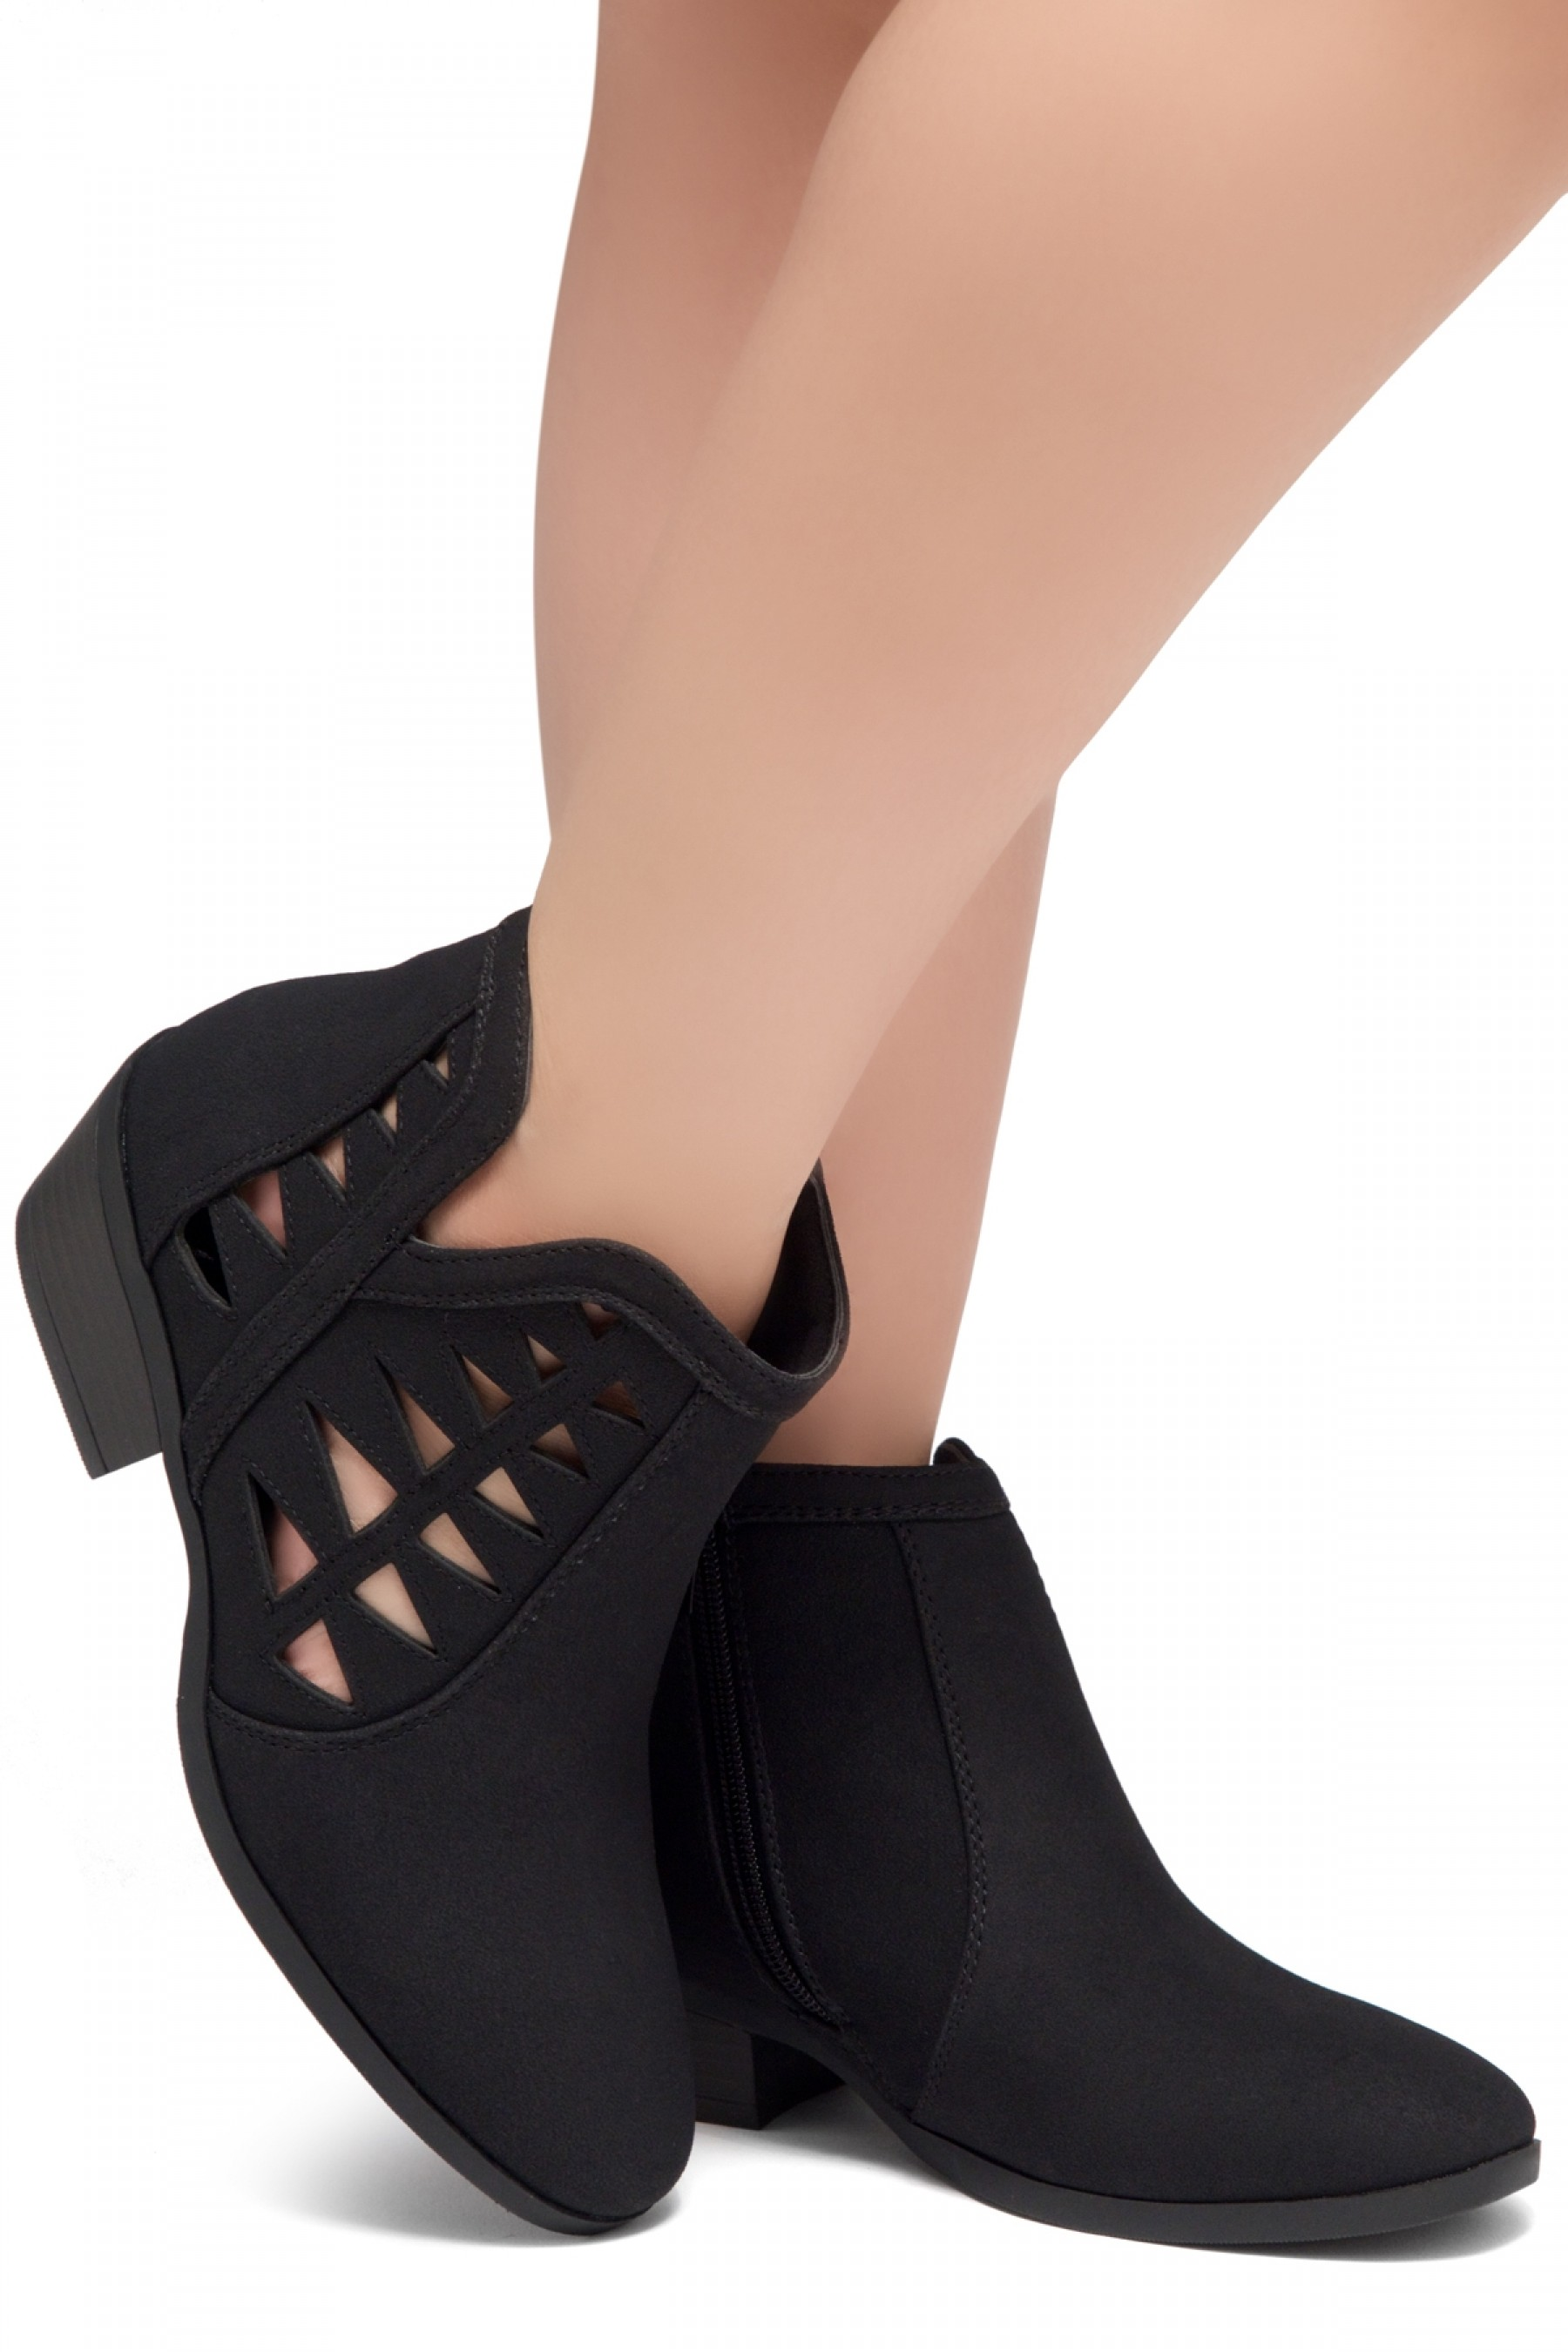 ShoeLand Sobrylla-Perforated Cutout Accents Stacked Low Heel Almond Toe Ankle Booties (Black)